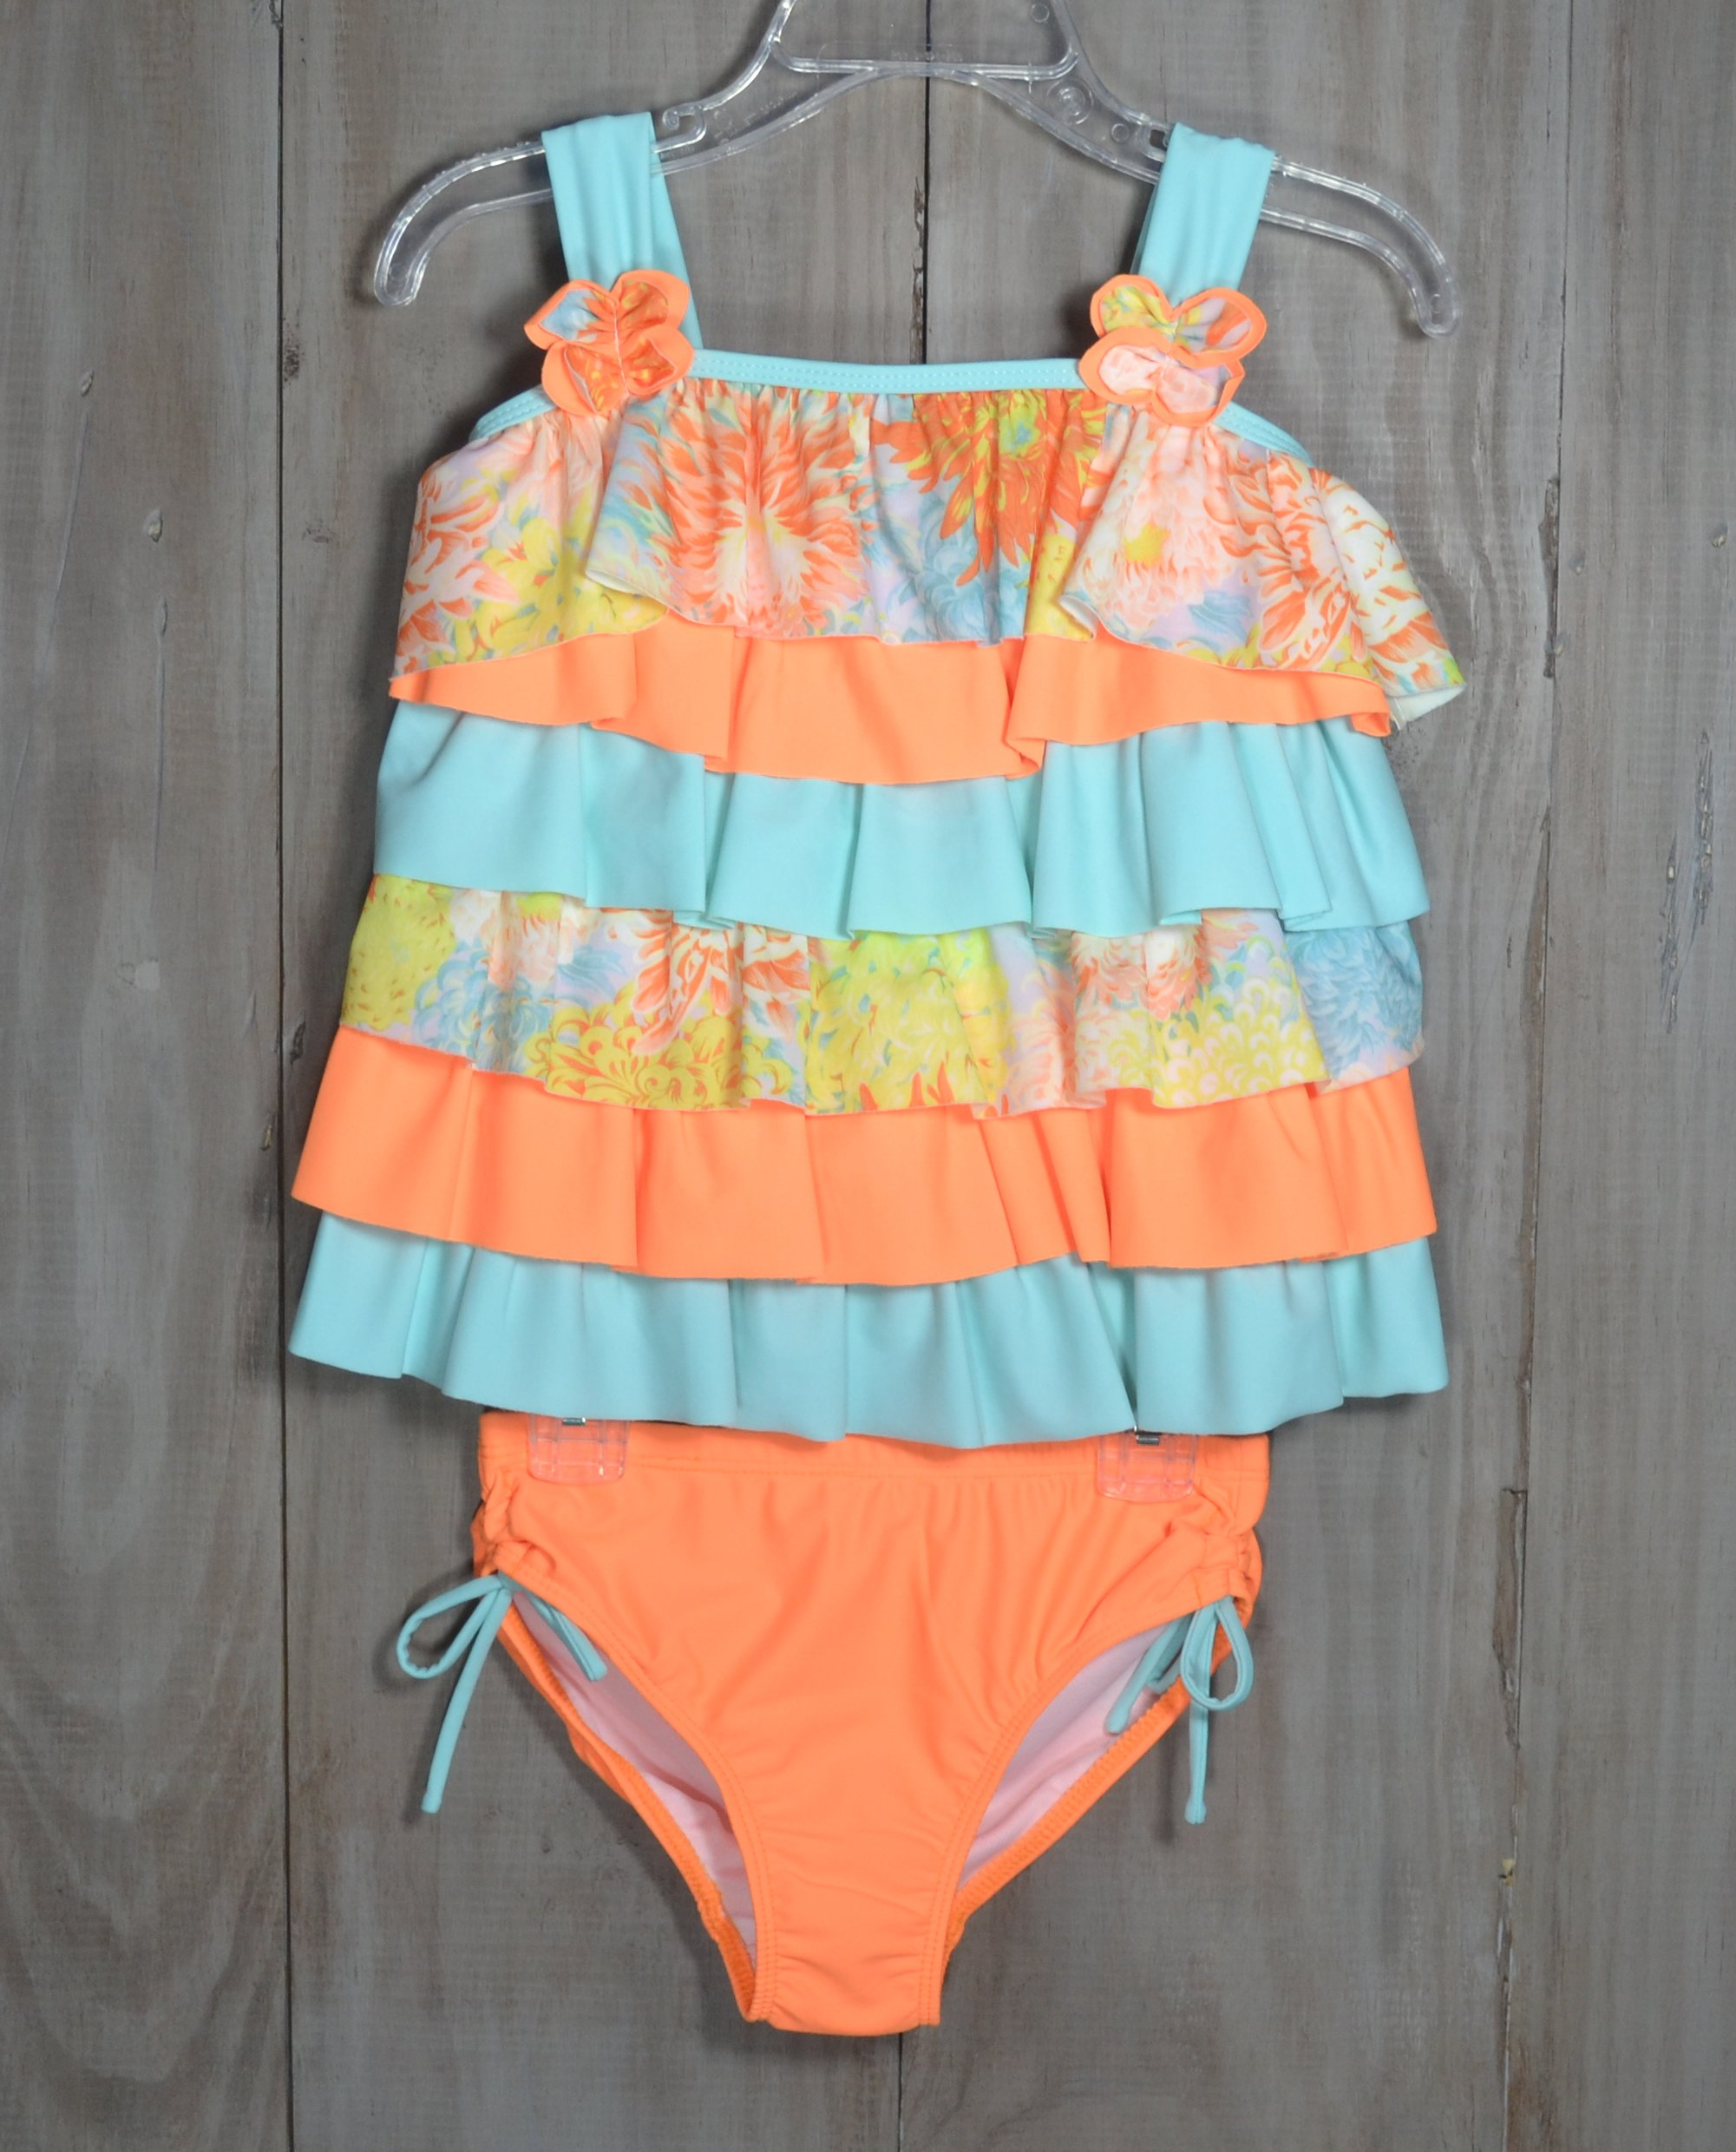 2ac075d8ac Fun 2 piece swimsuit in orange and mint solids and floral print. The top  has · Isobella & Chloe